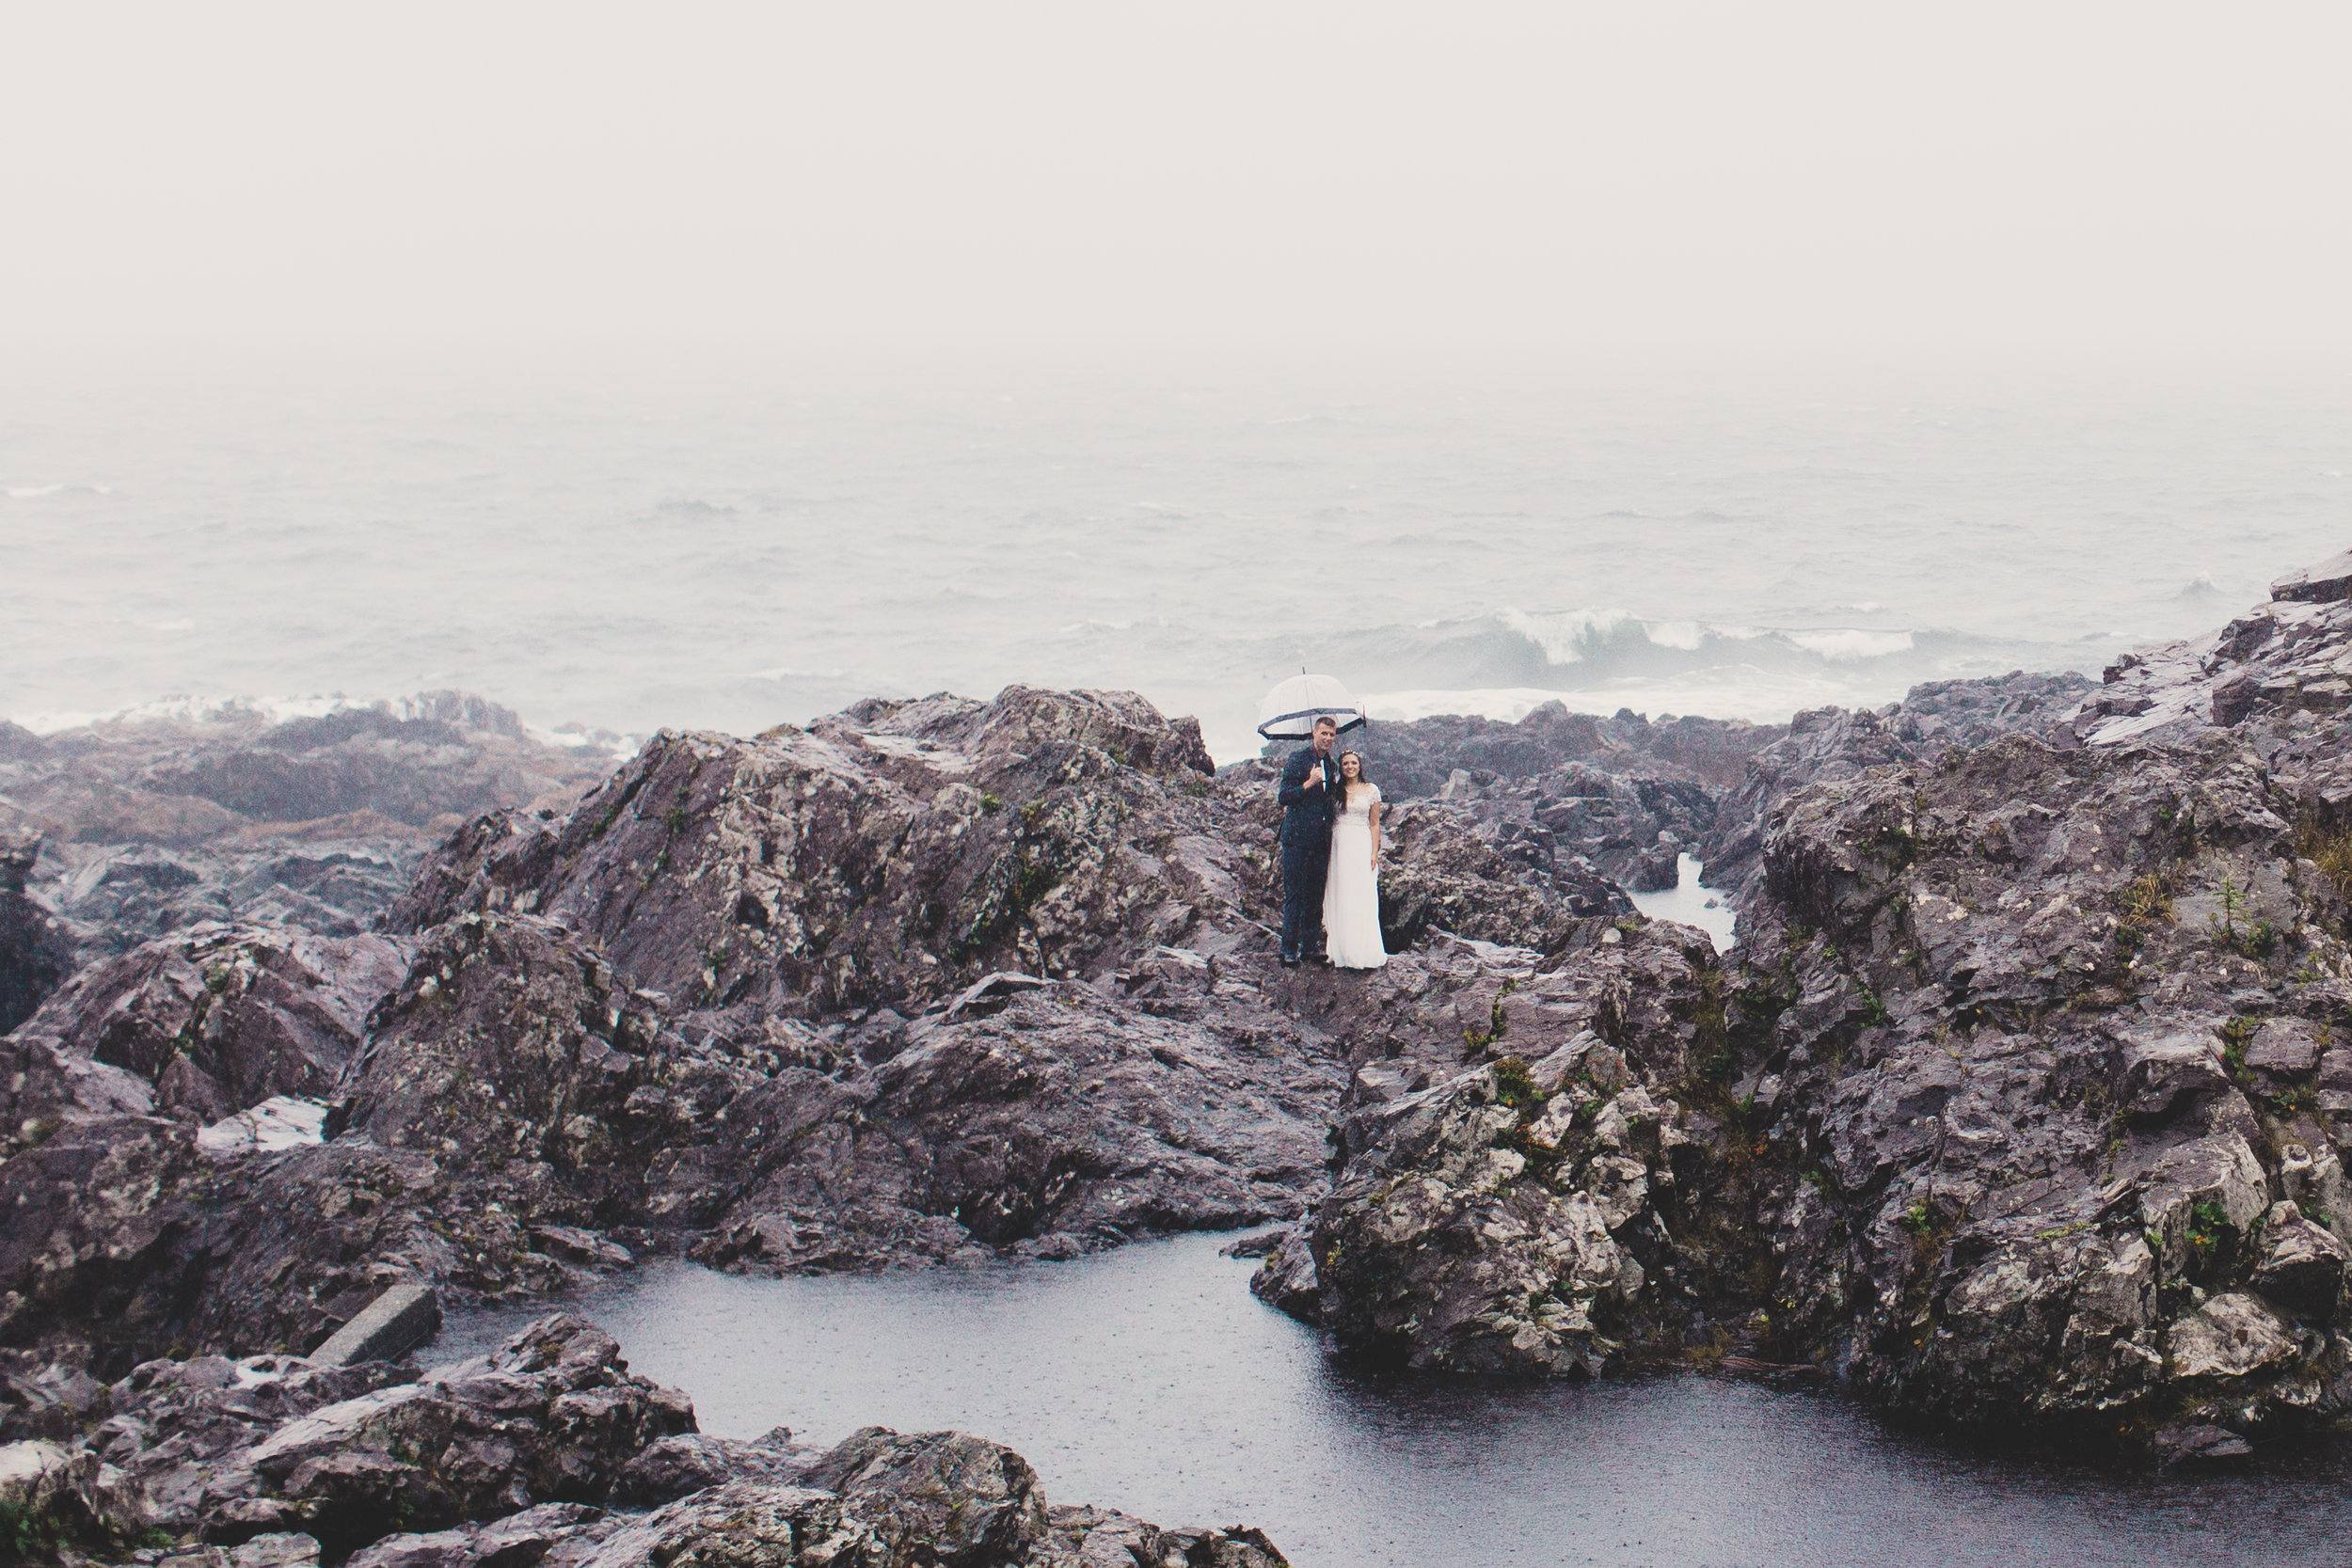 Taken at Lighthouse Park in Ucluelet, BC, by Lindsay